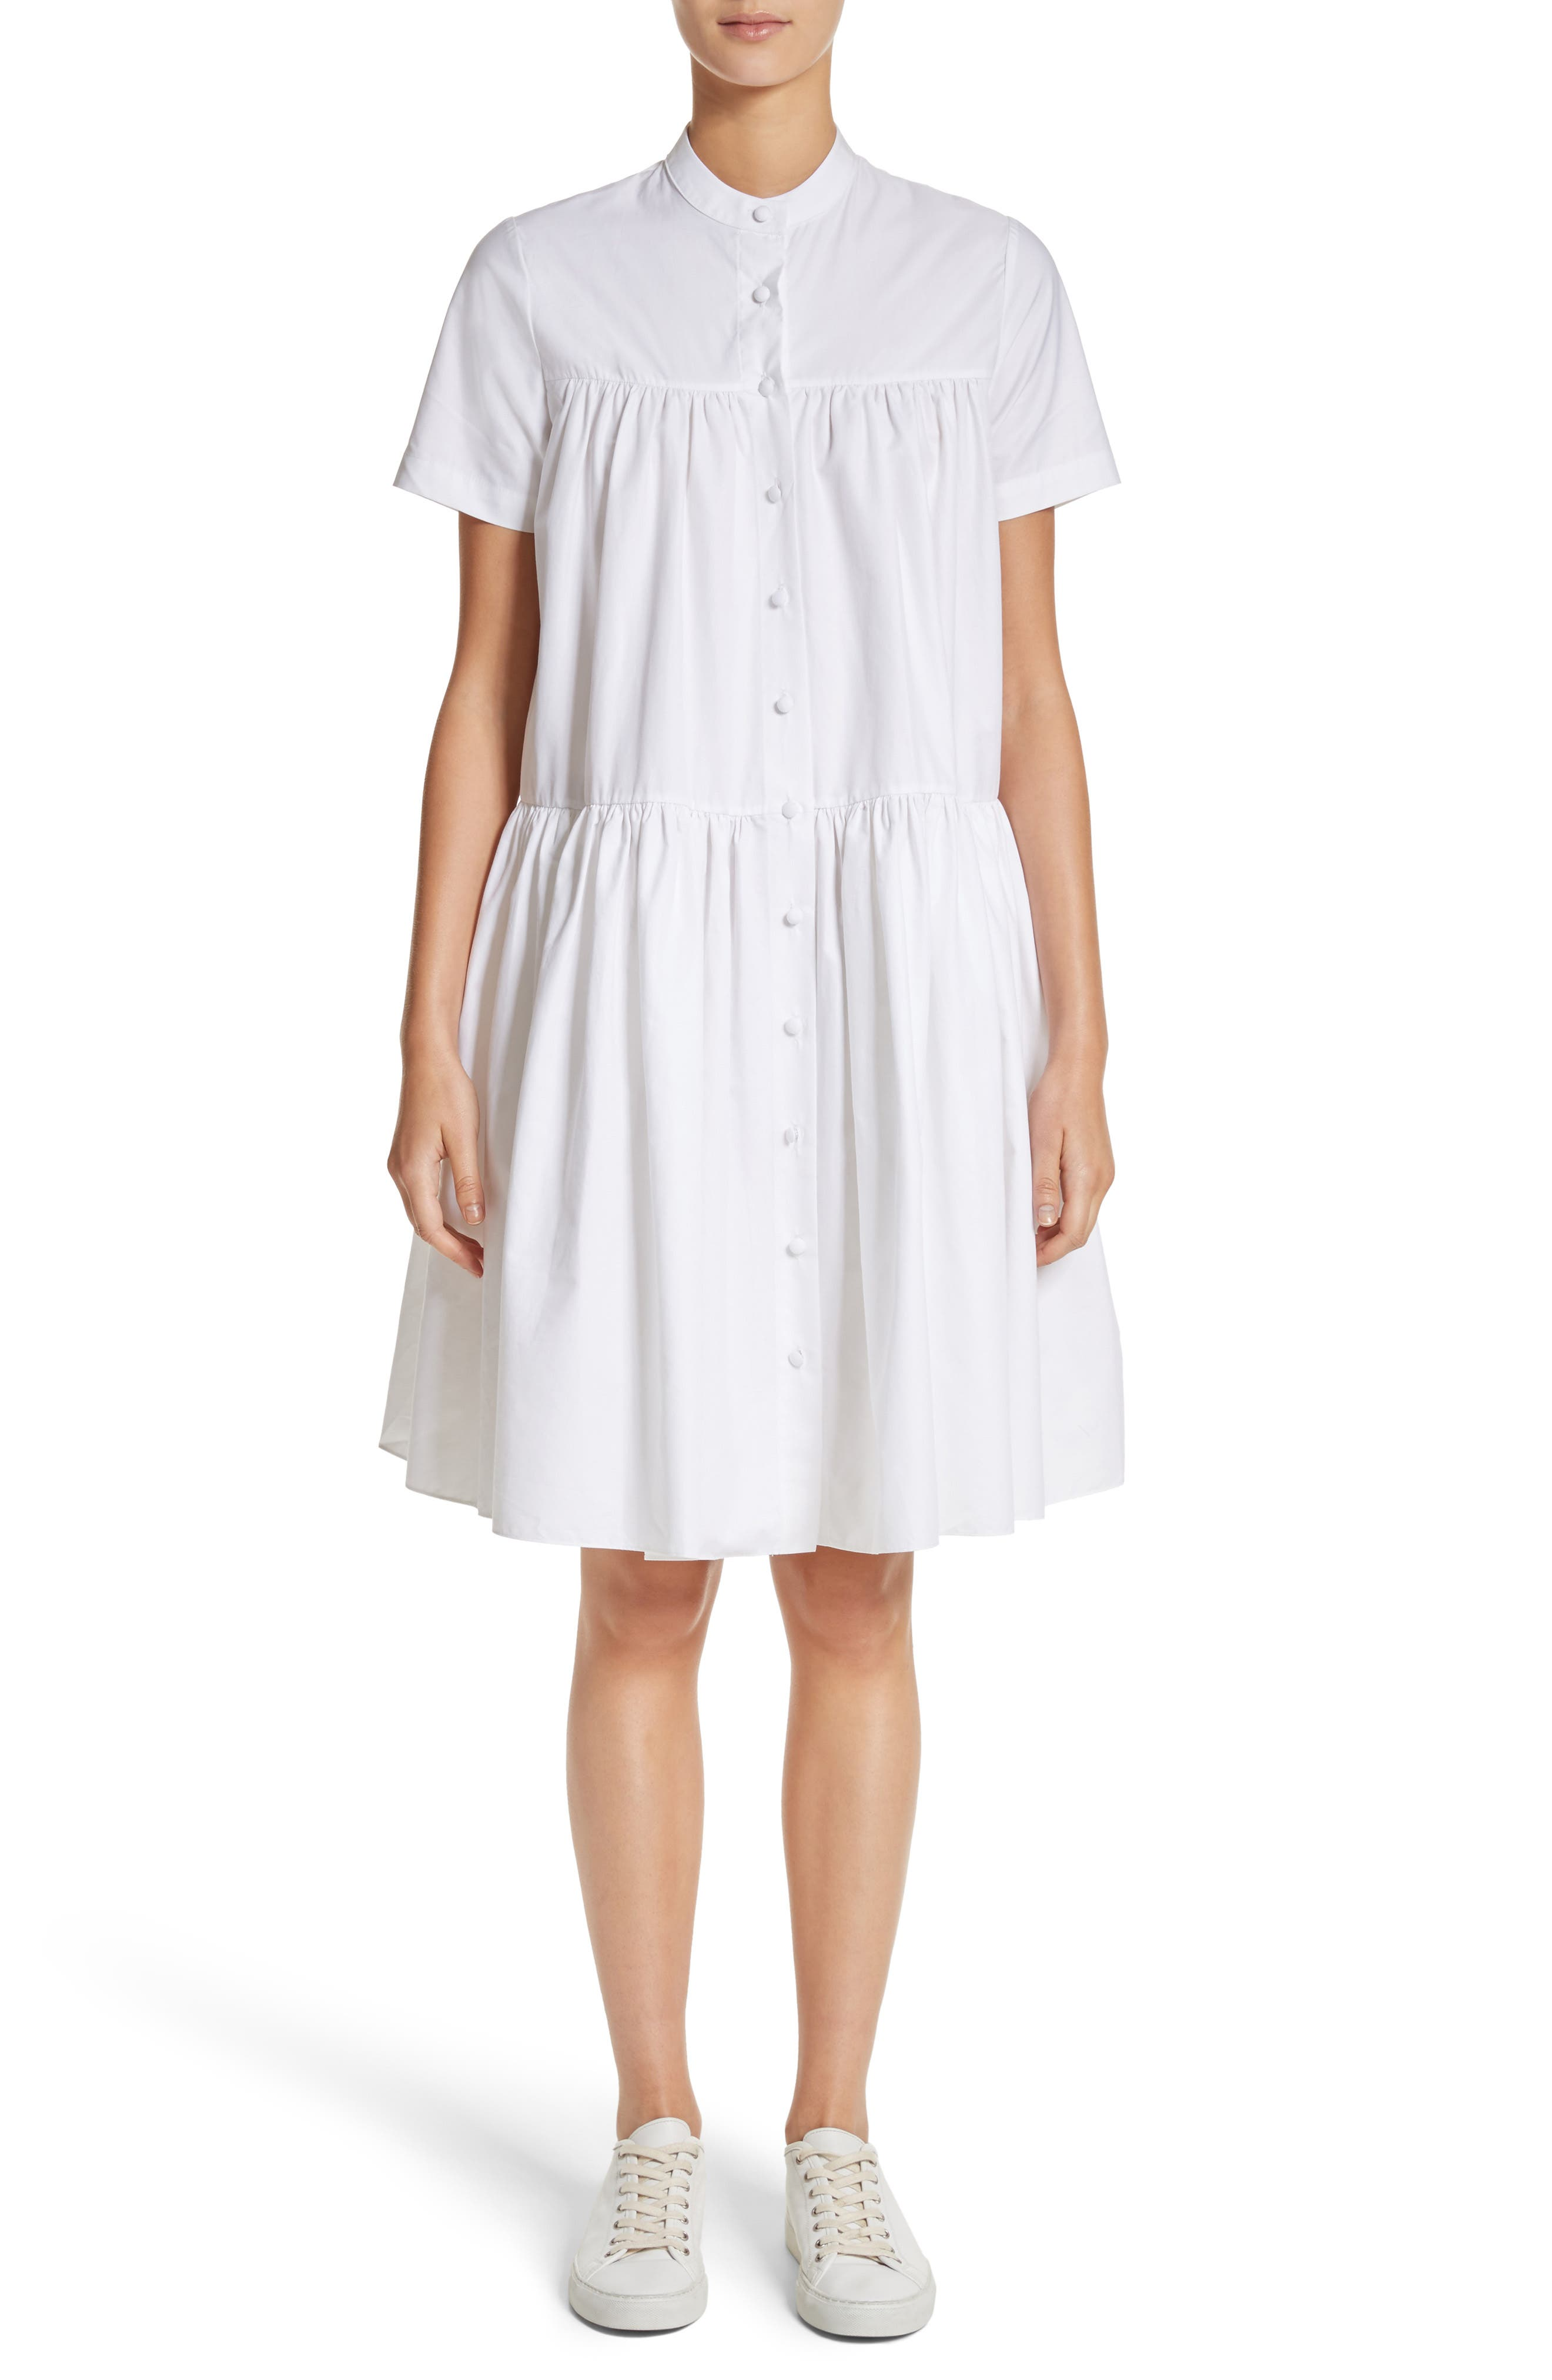 Co Tiered Puff Dress